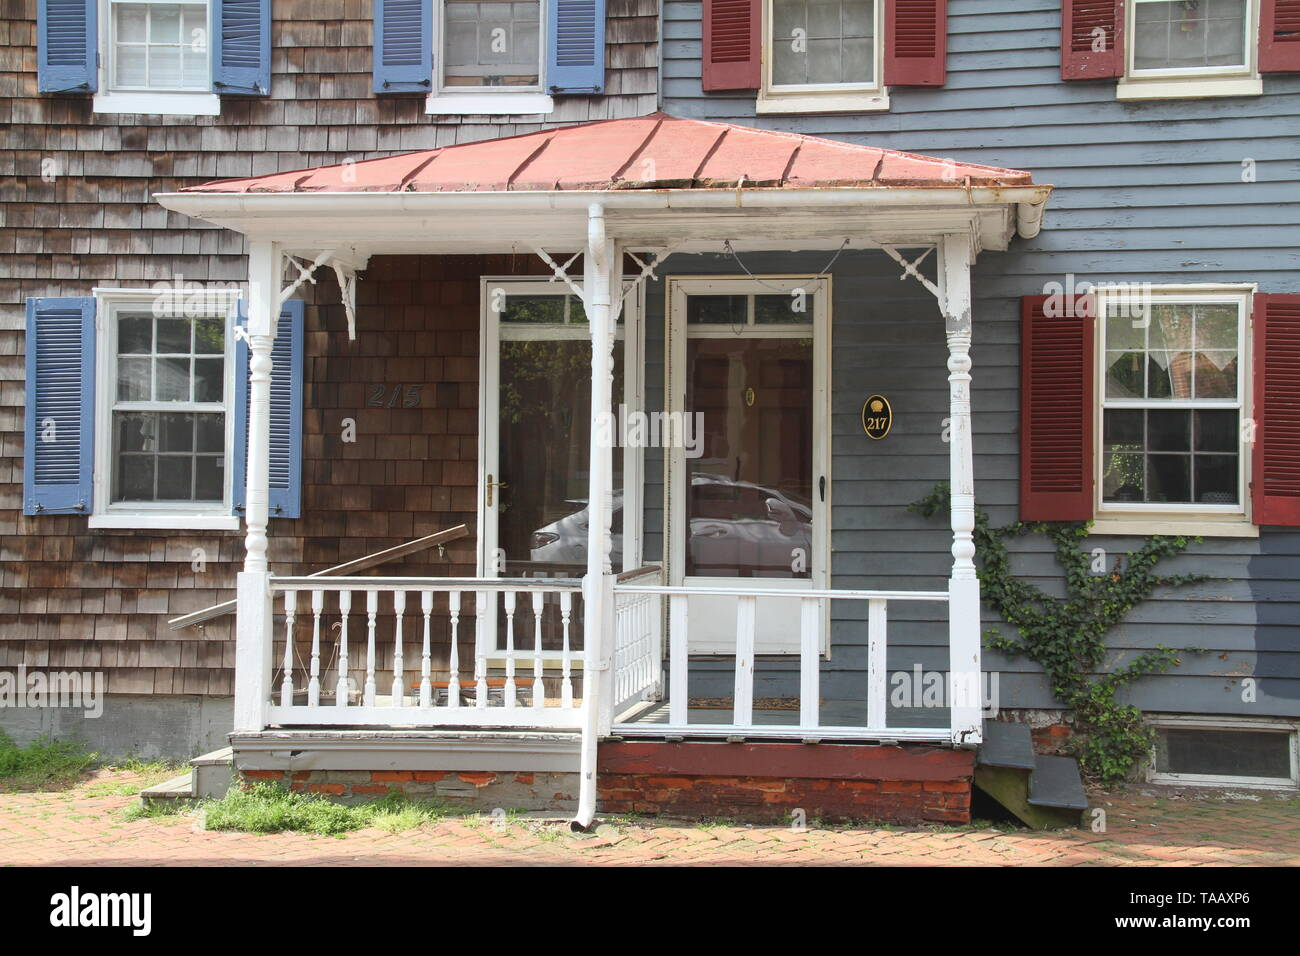 Entrance to duplex home in poor condition in the historical district of Annapolis, MD, USA - Stock Image